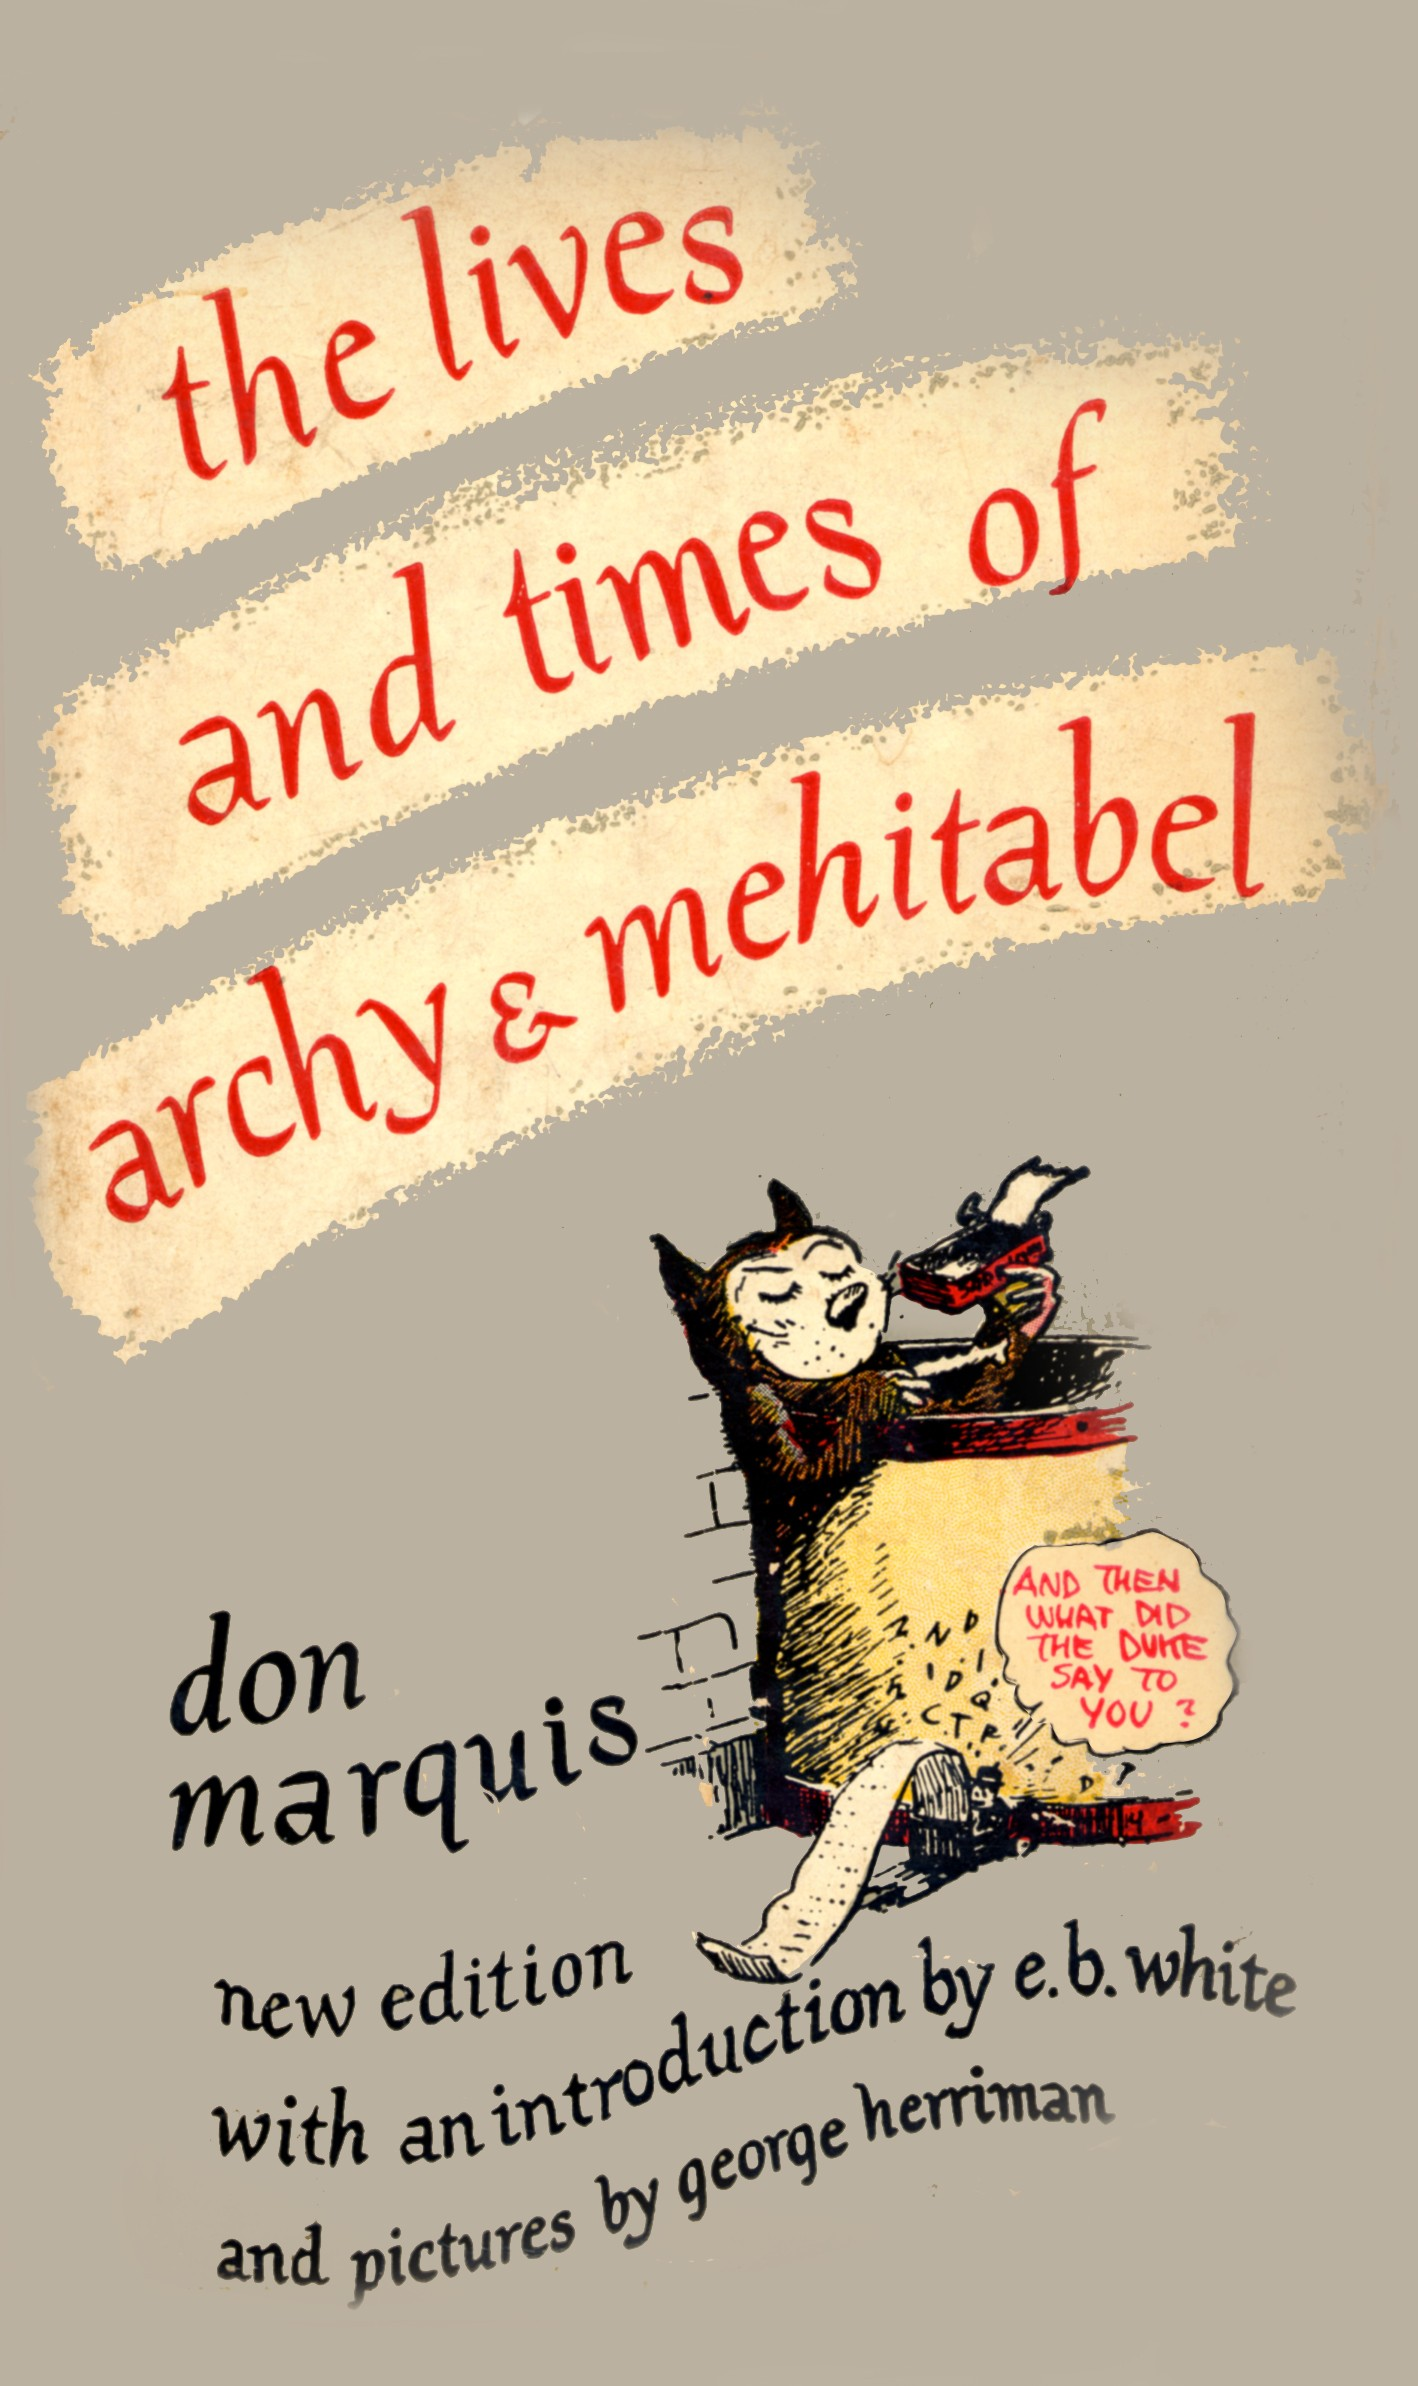 Image of a book cover of Archy and Mehitabel.